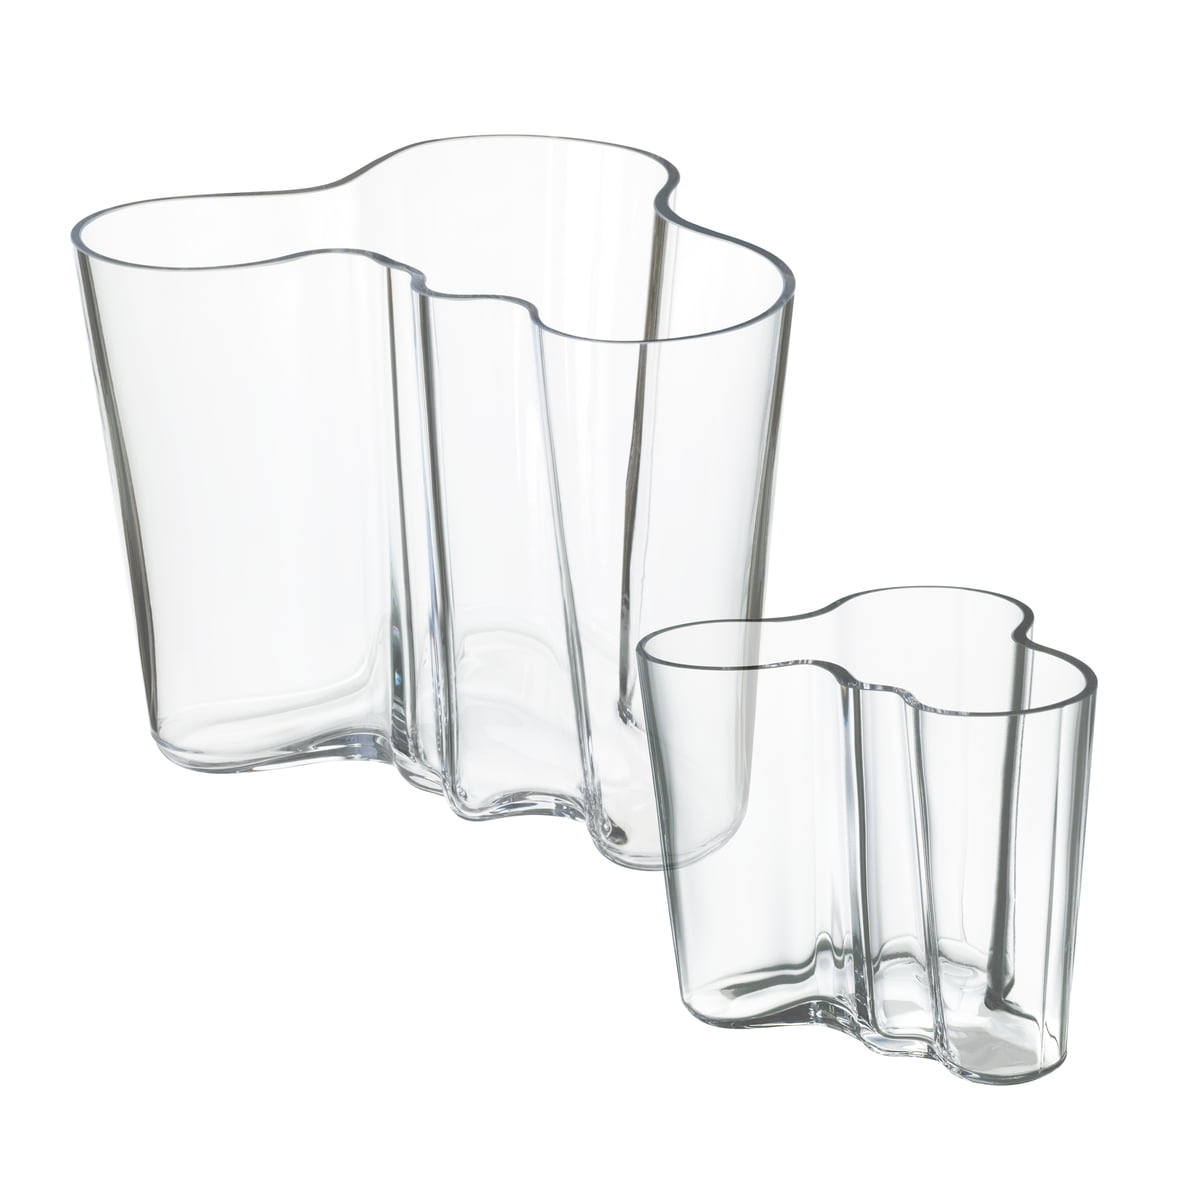 offer alvar aalto vases set of 2 clear 160 95 mm - Aalto Vase